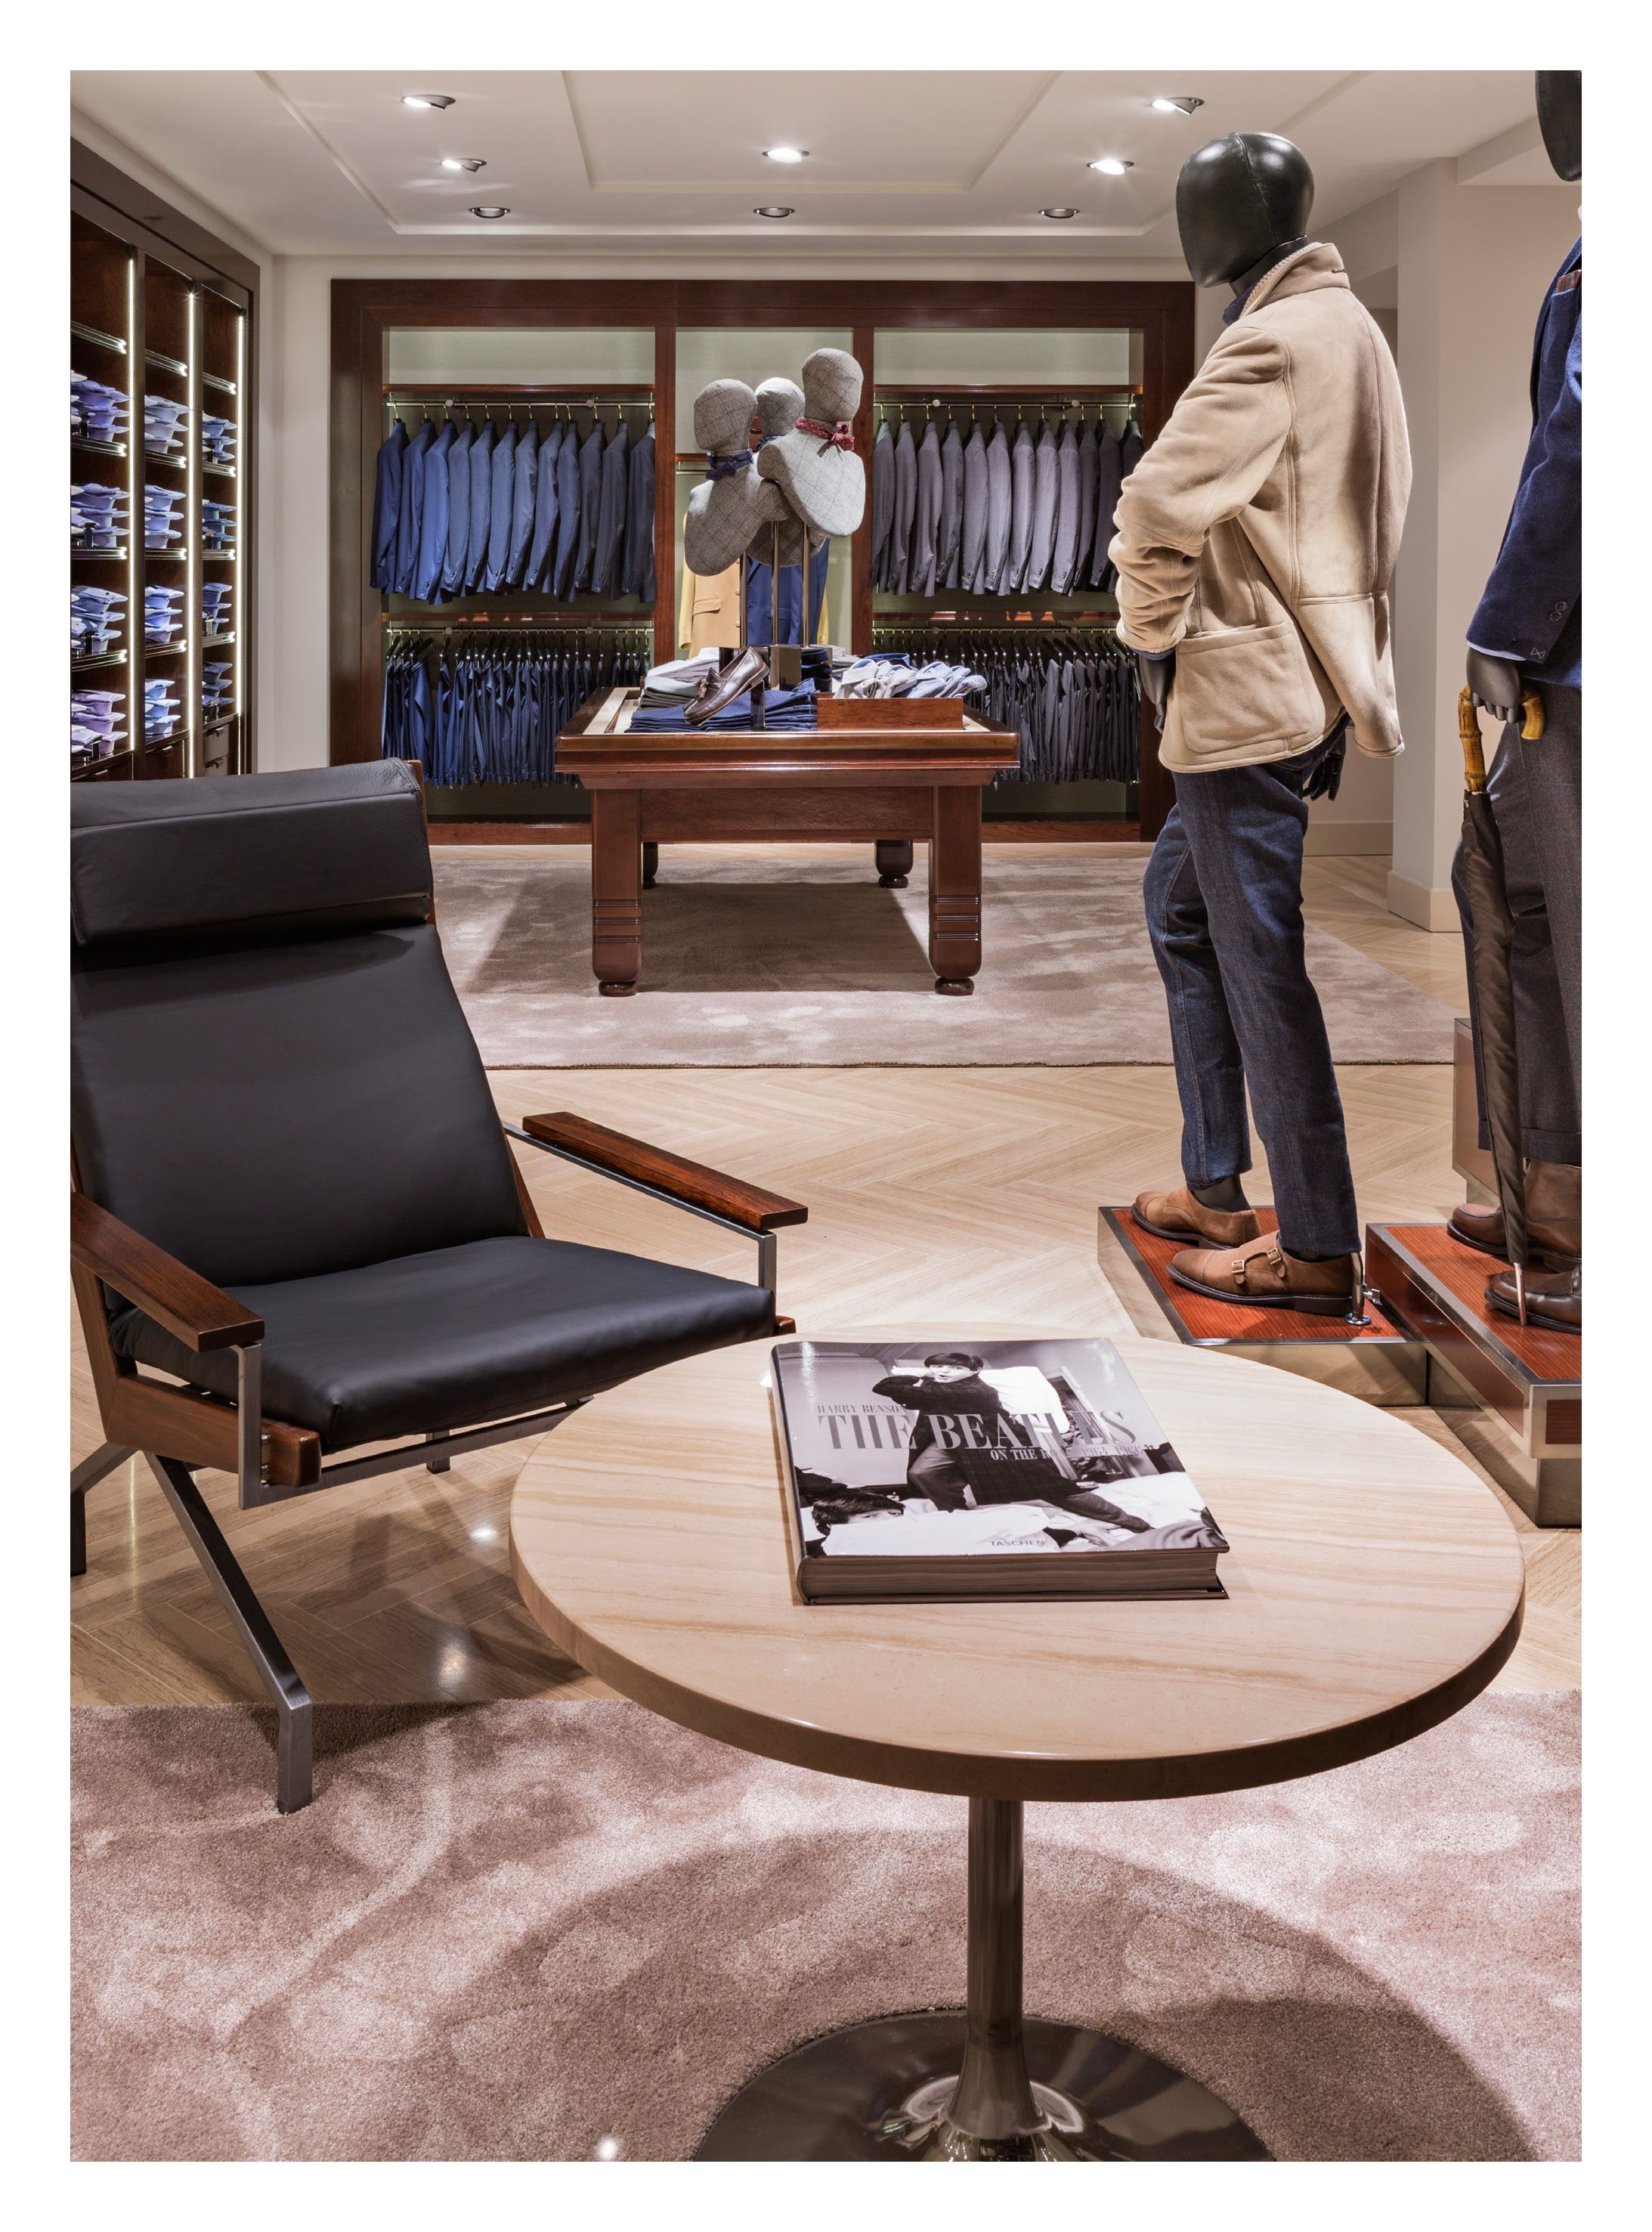 Massimo Dutti Flagship Store Serrano 48 Madrid Basement Floor Men S Collection Clothing Store Interior Store Design Luxury Interior Design